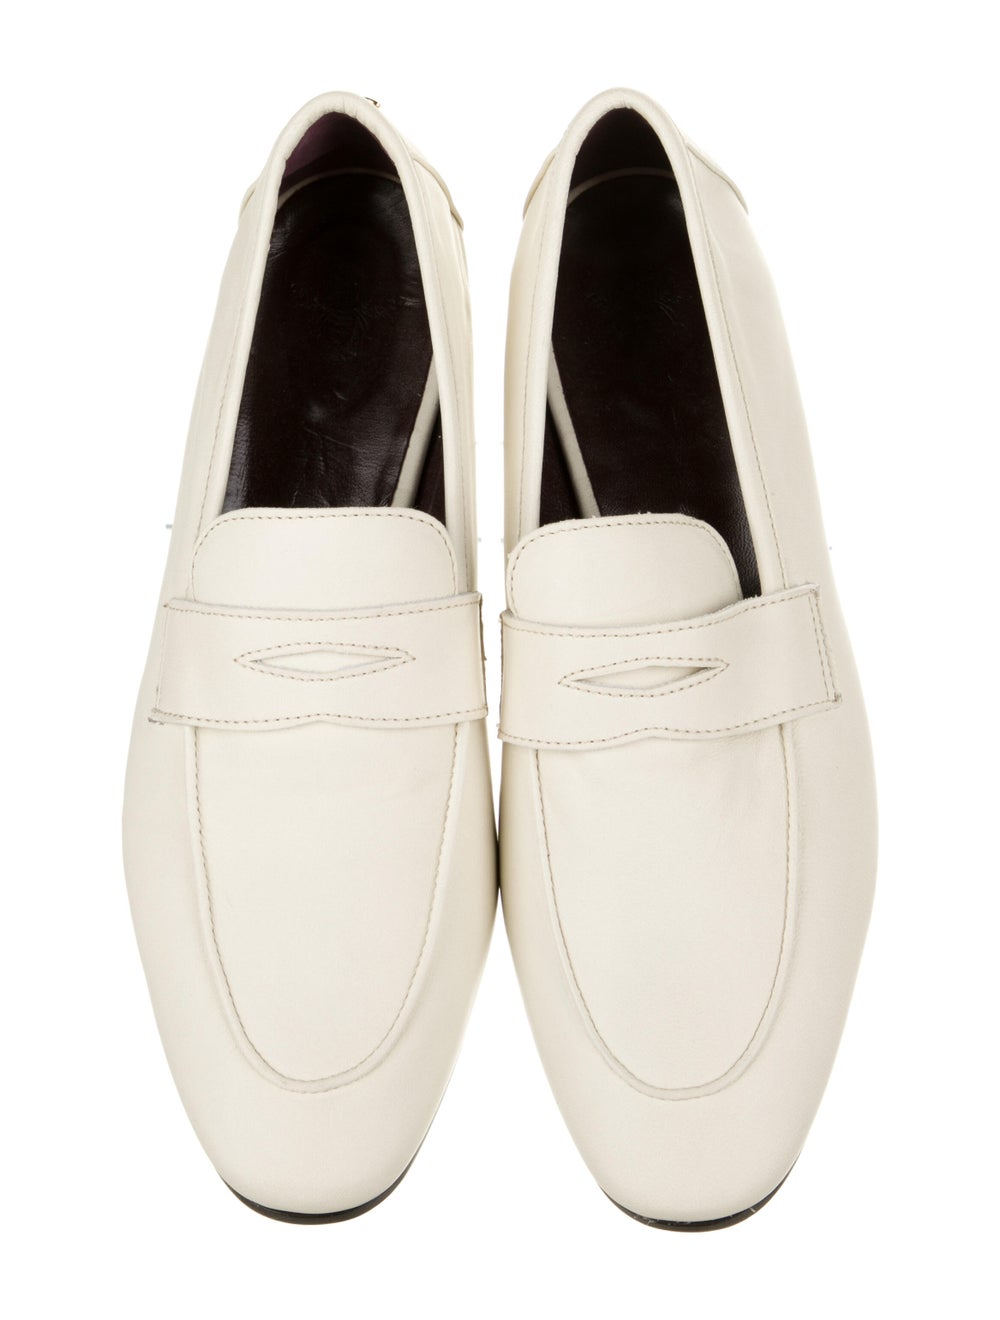 Bougeotte Loafers - image 3